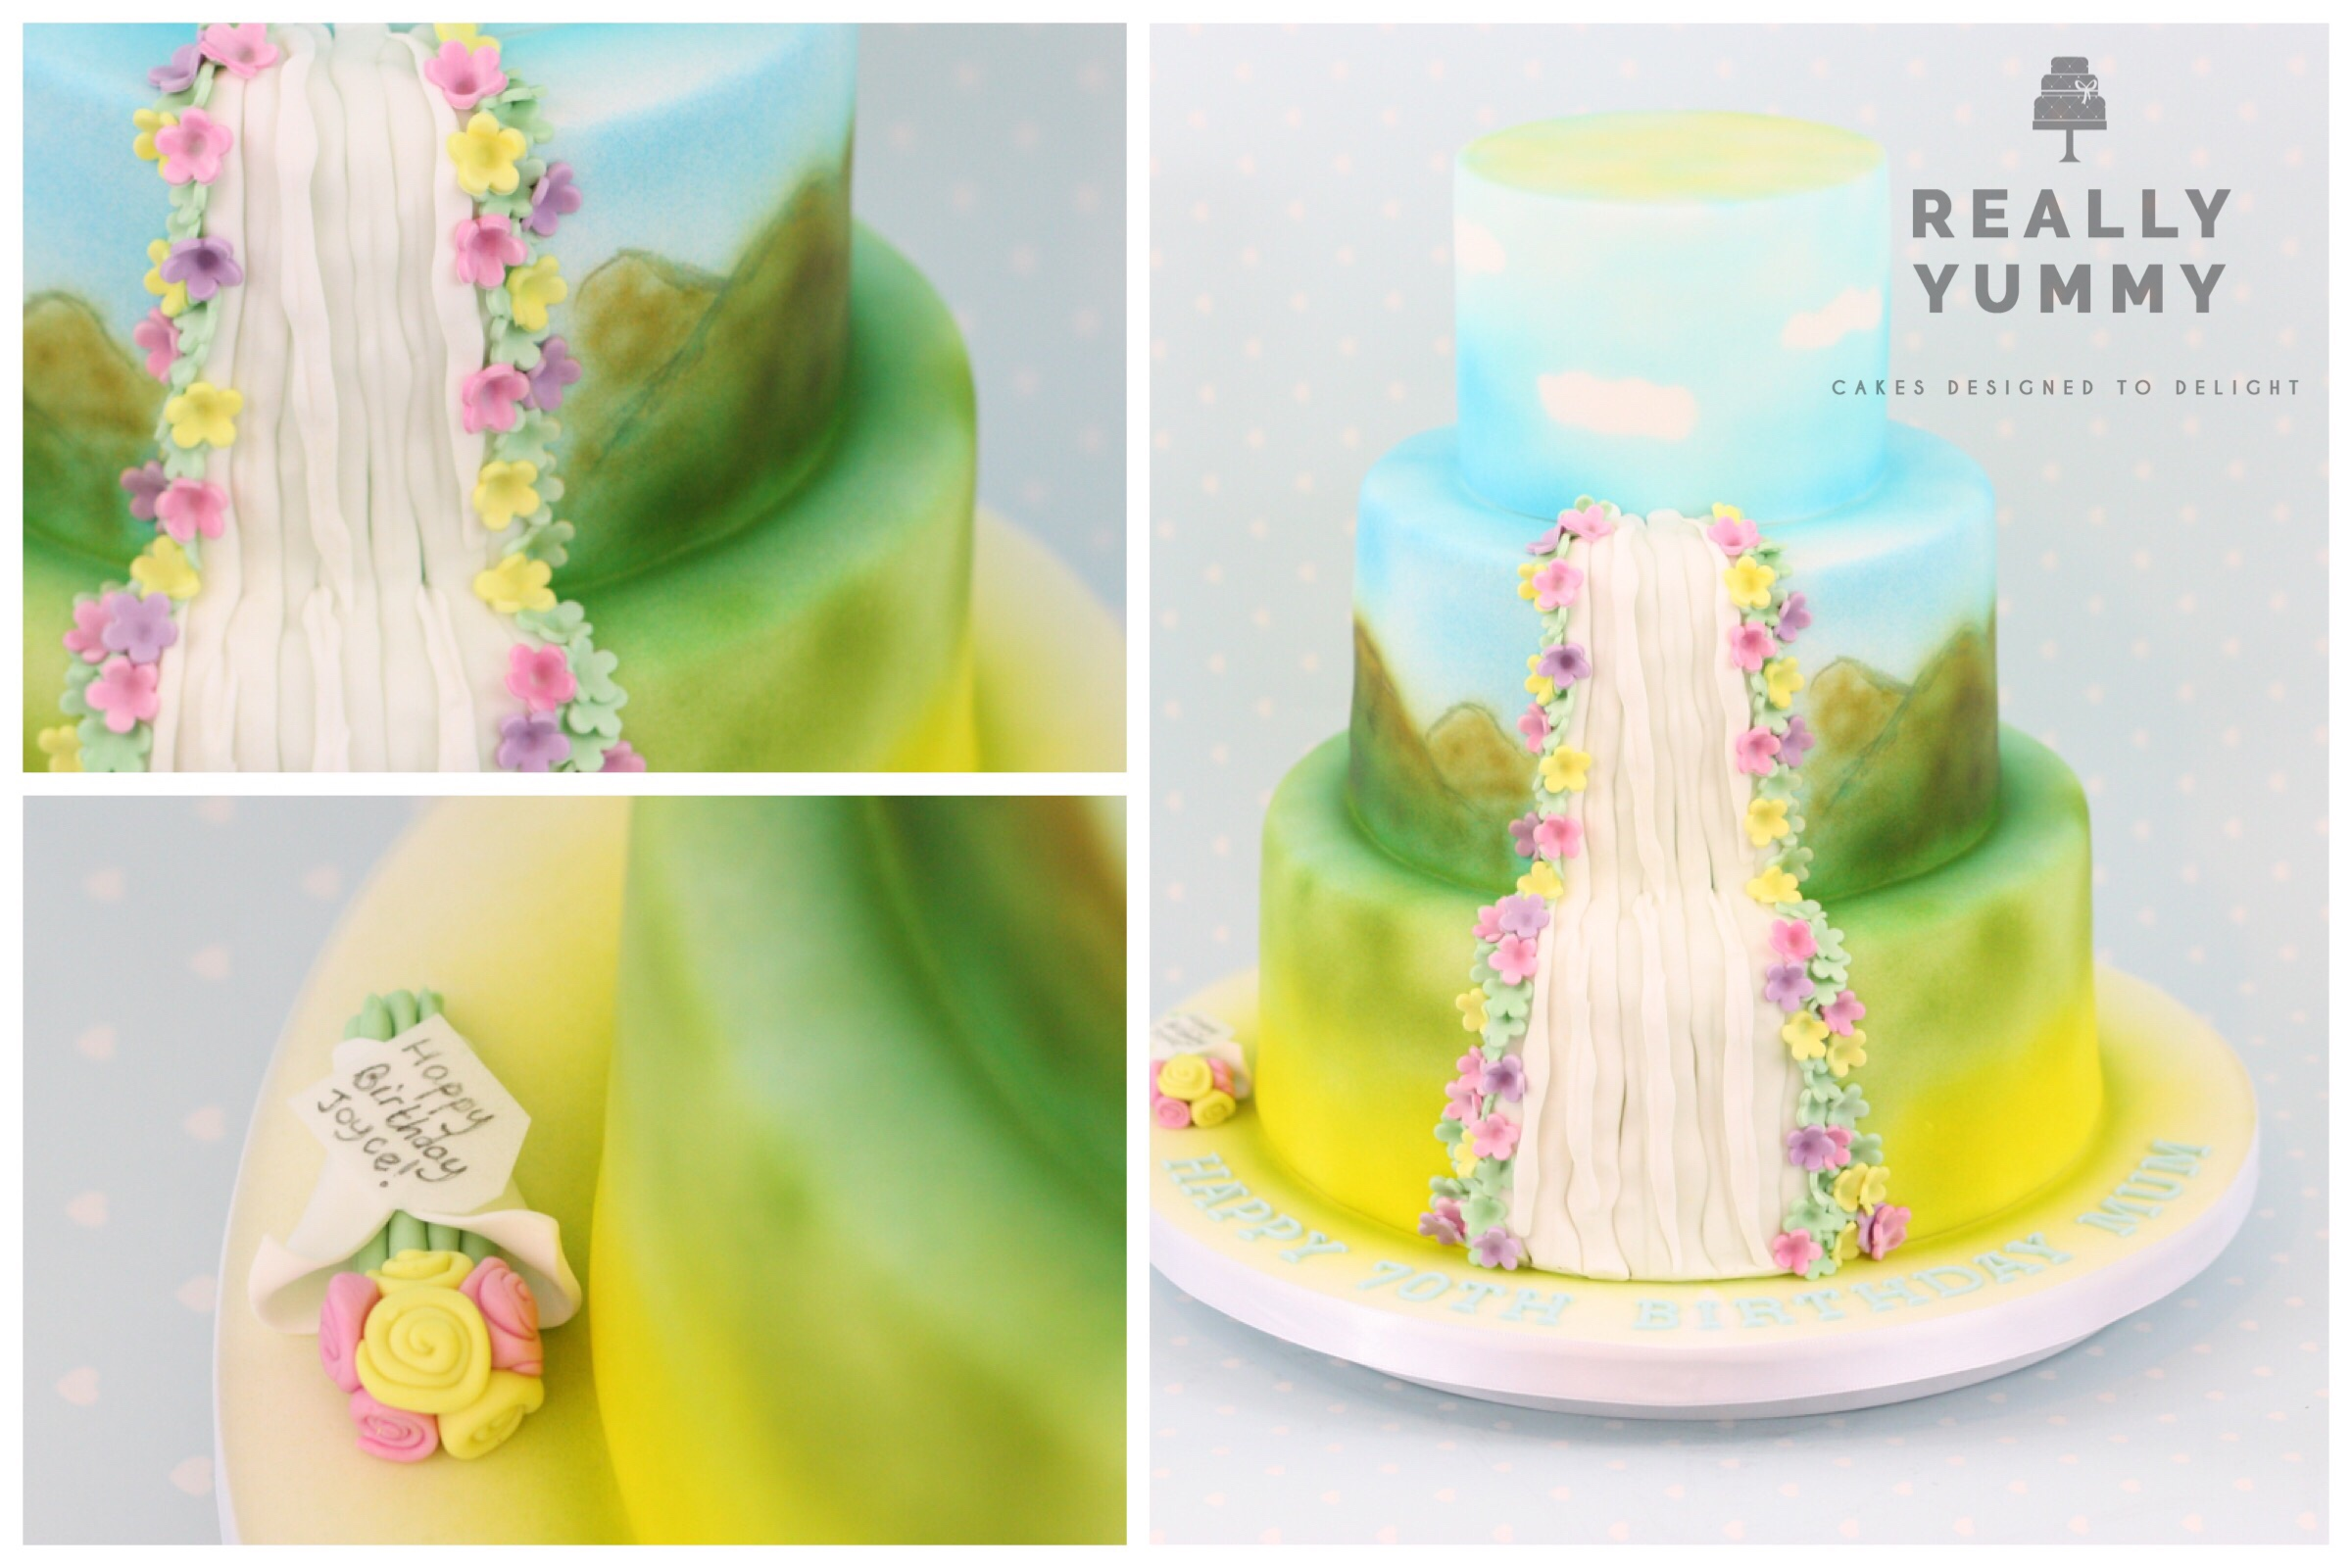 Waterfall cake, with hand-painted scenery